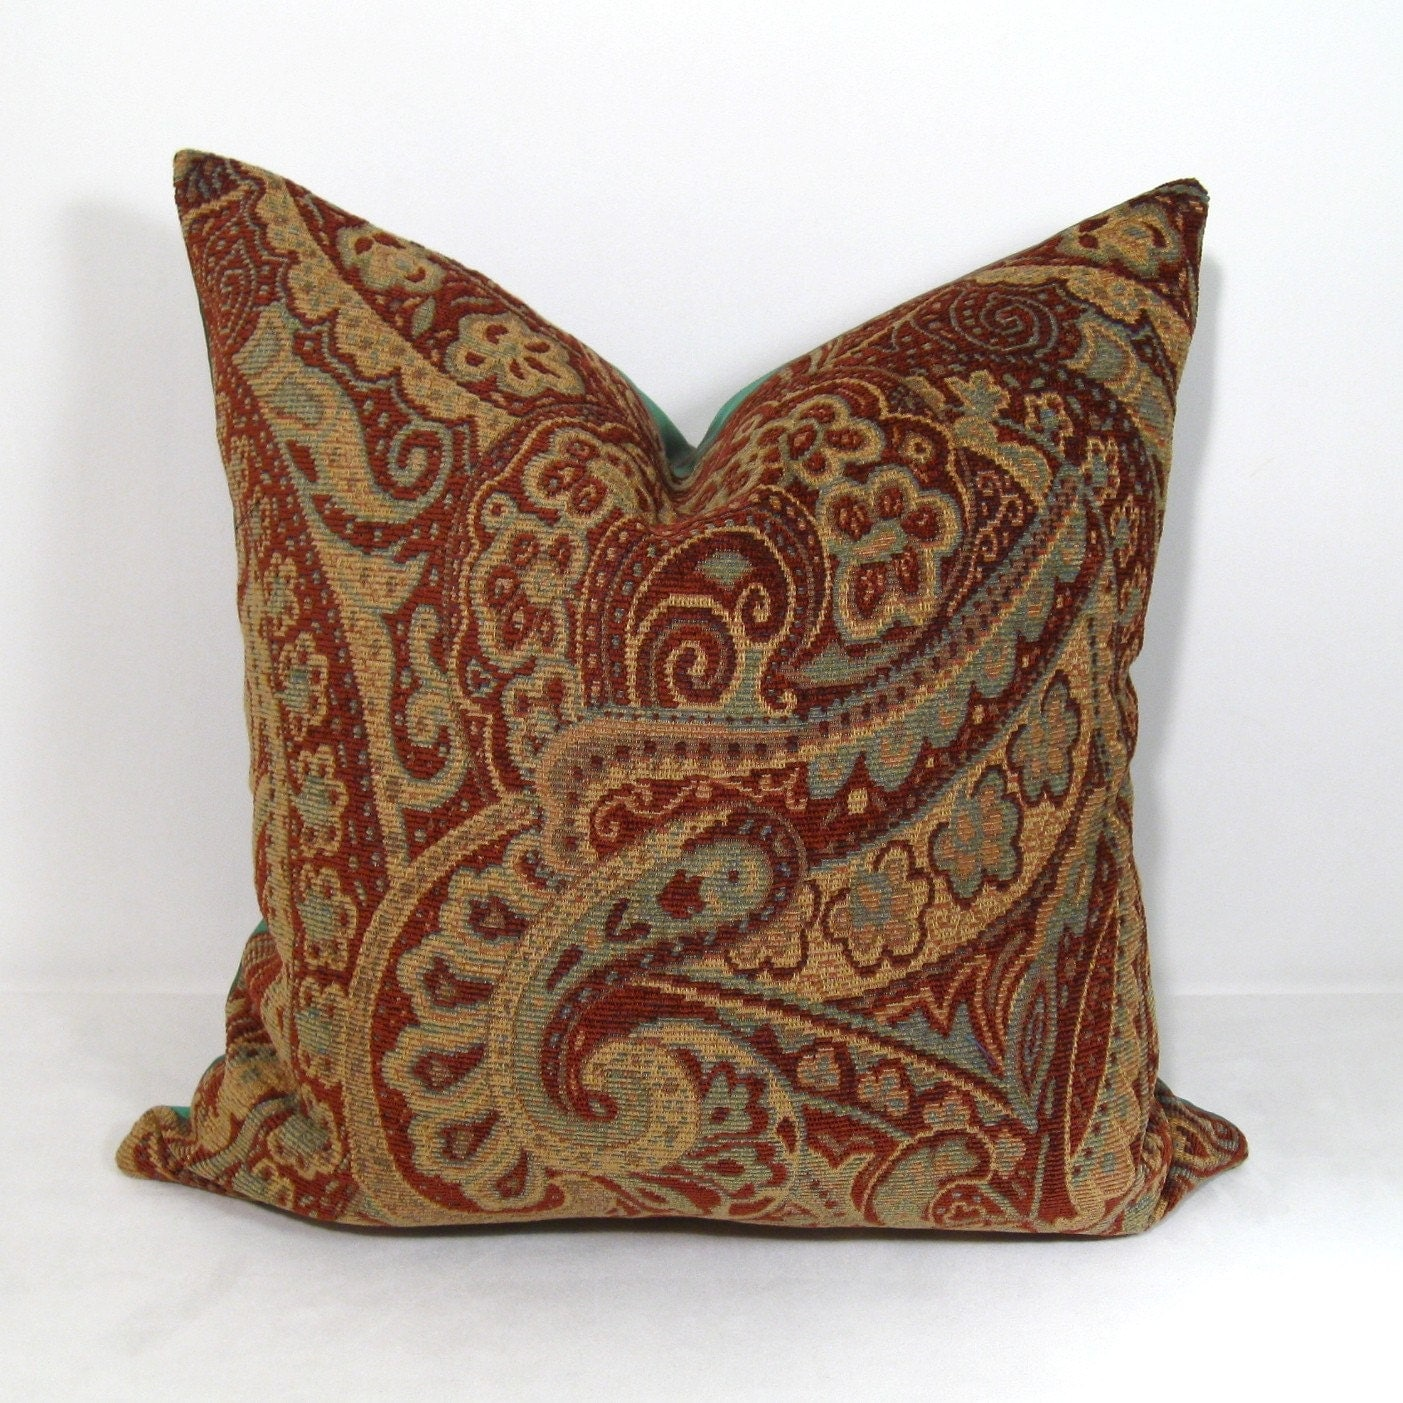 Sale Paisley Pillow Cushion Cover Decorative By Sewsampleshop